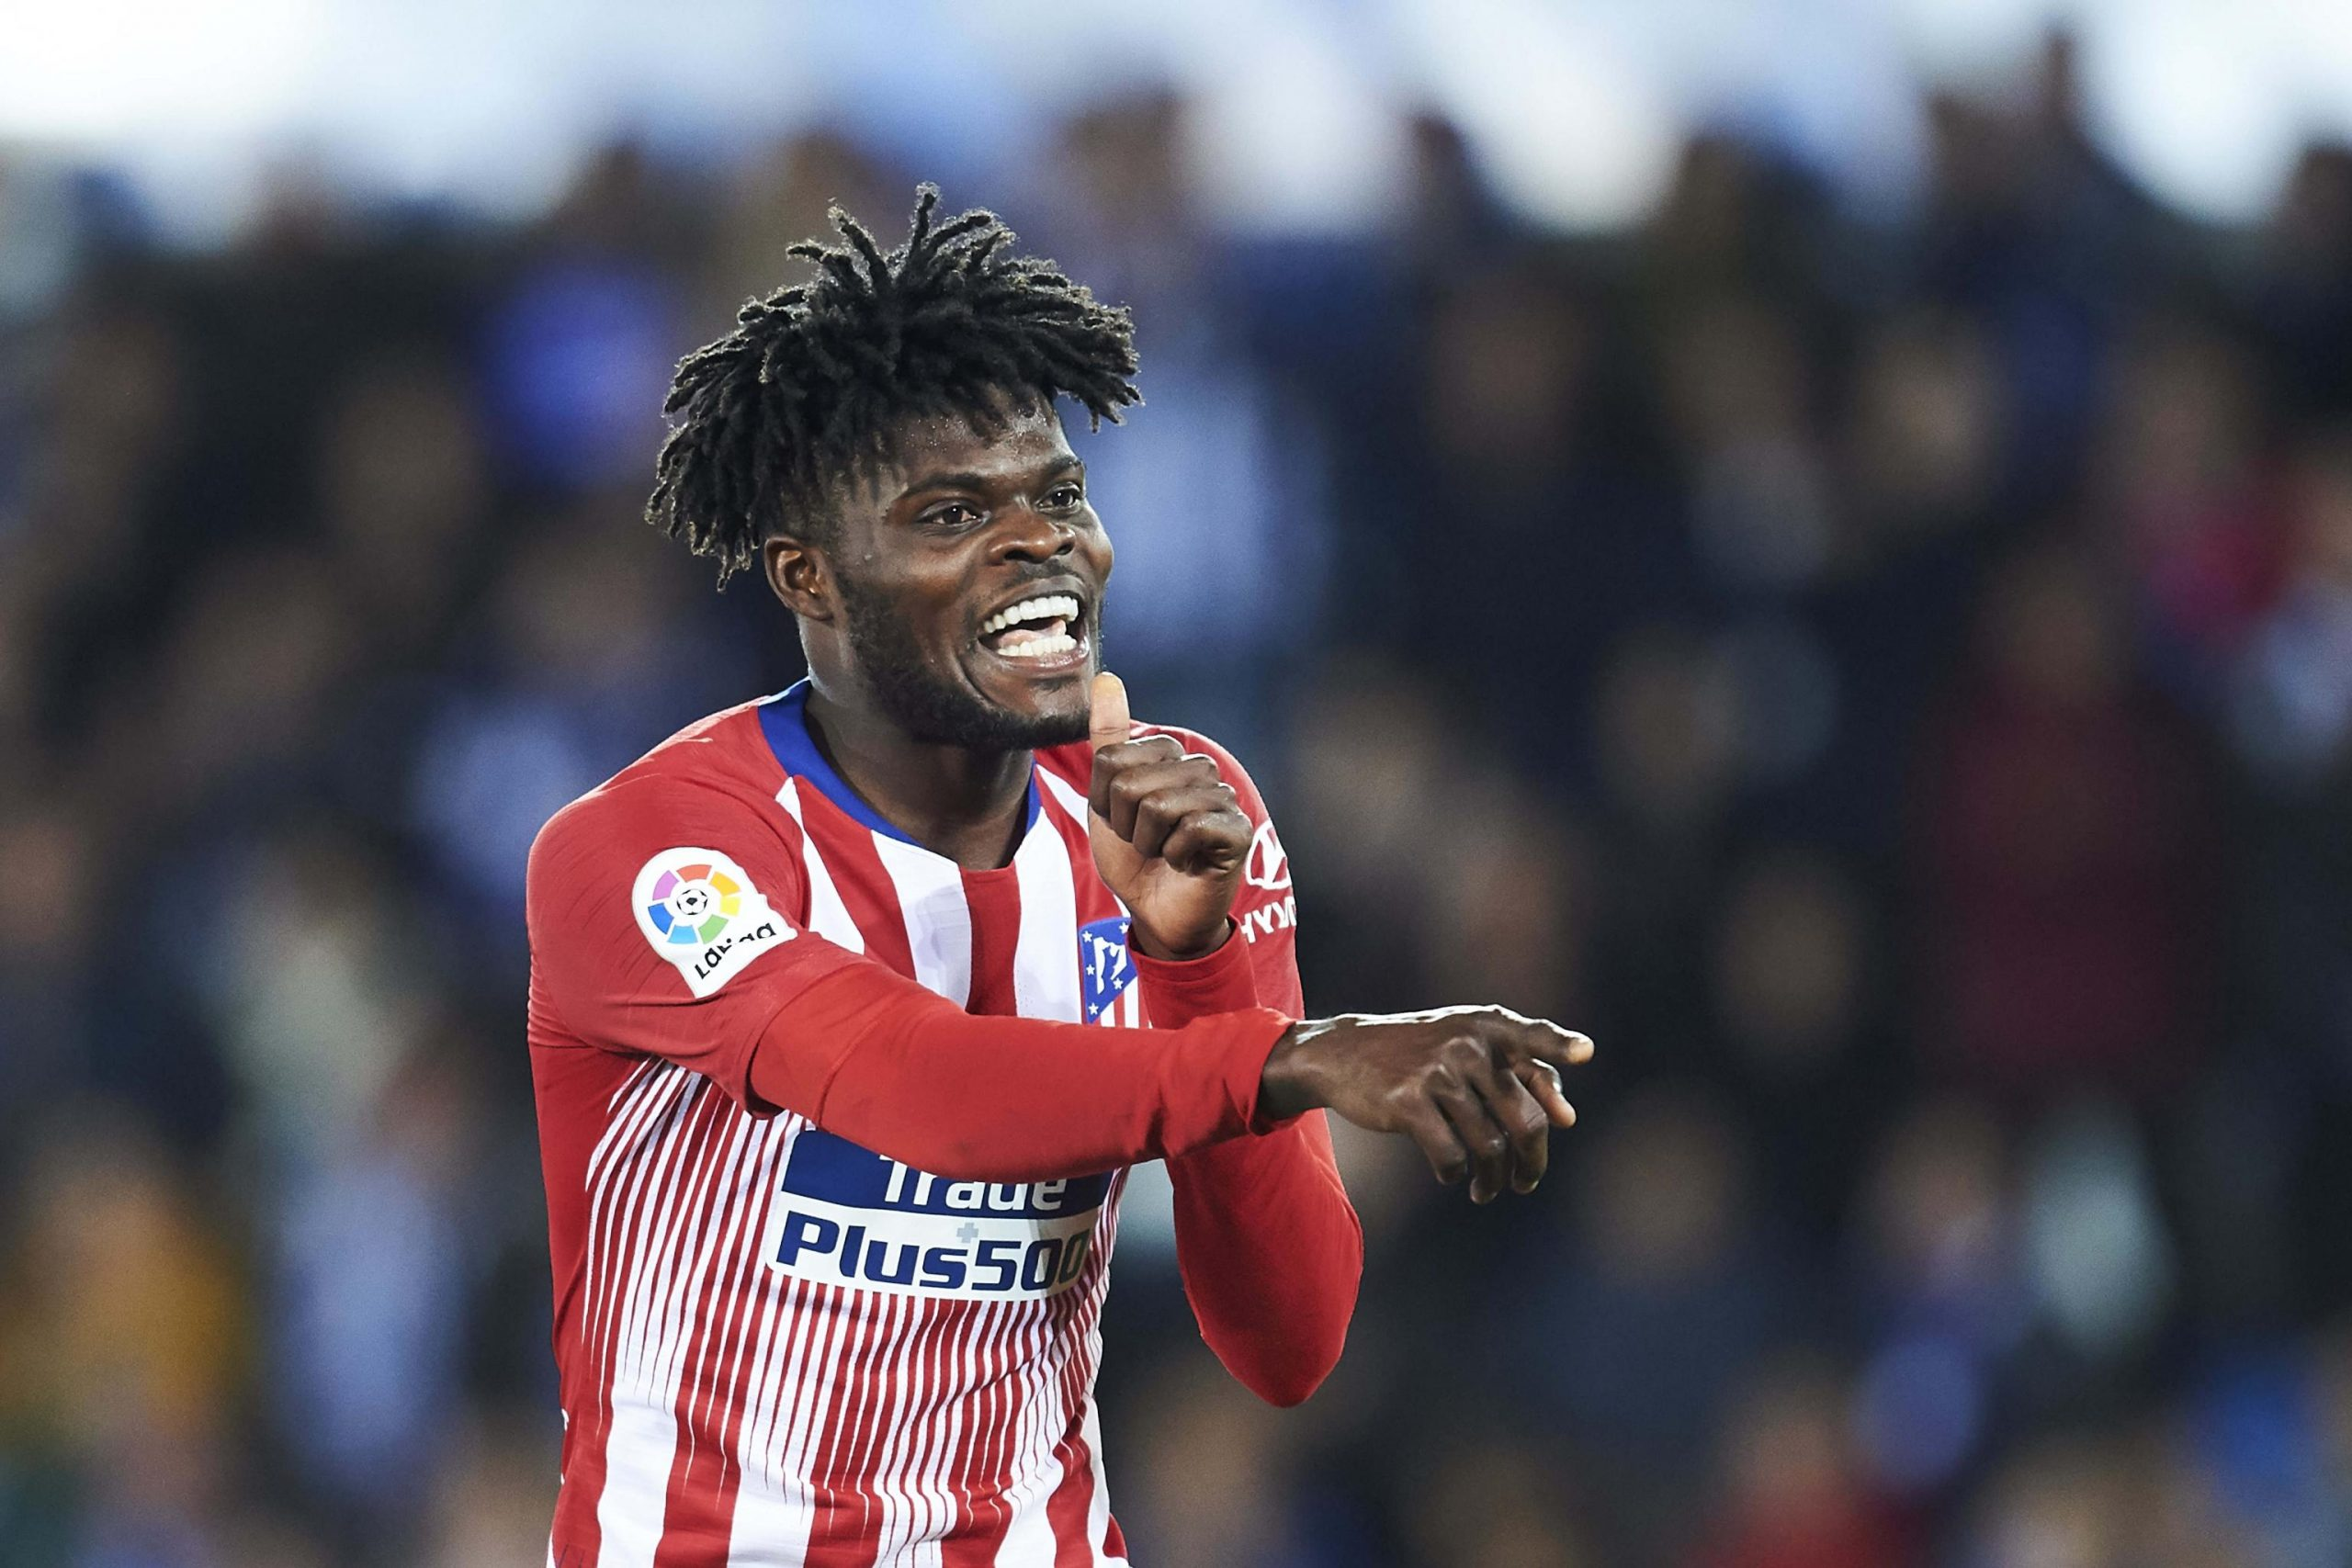 Five things you might not know about Thomas Partey